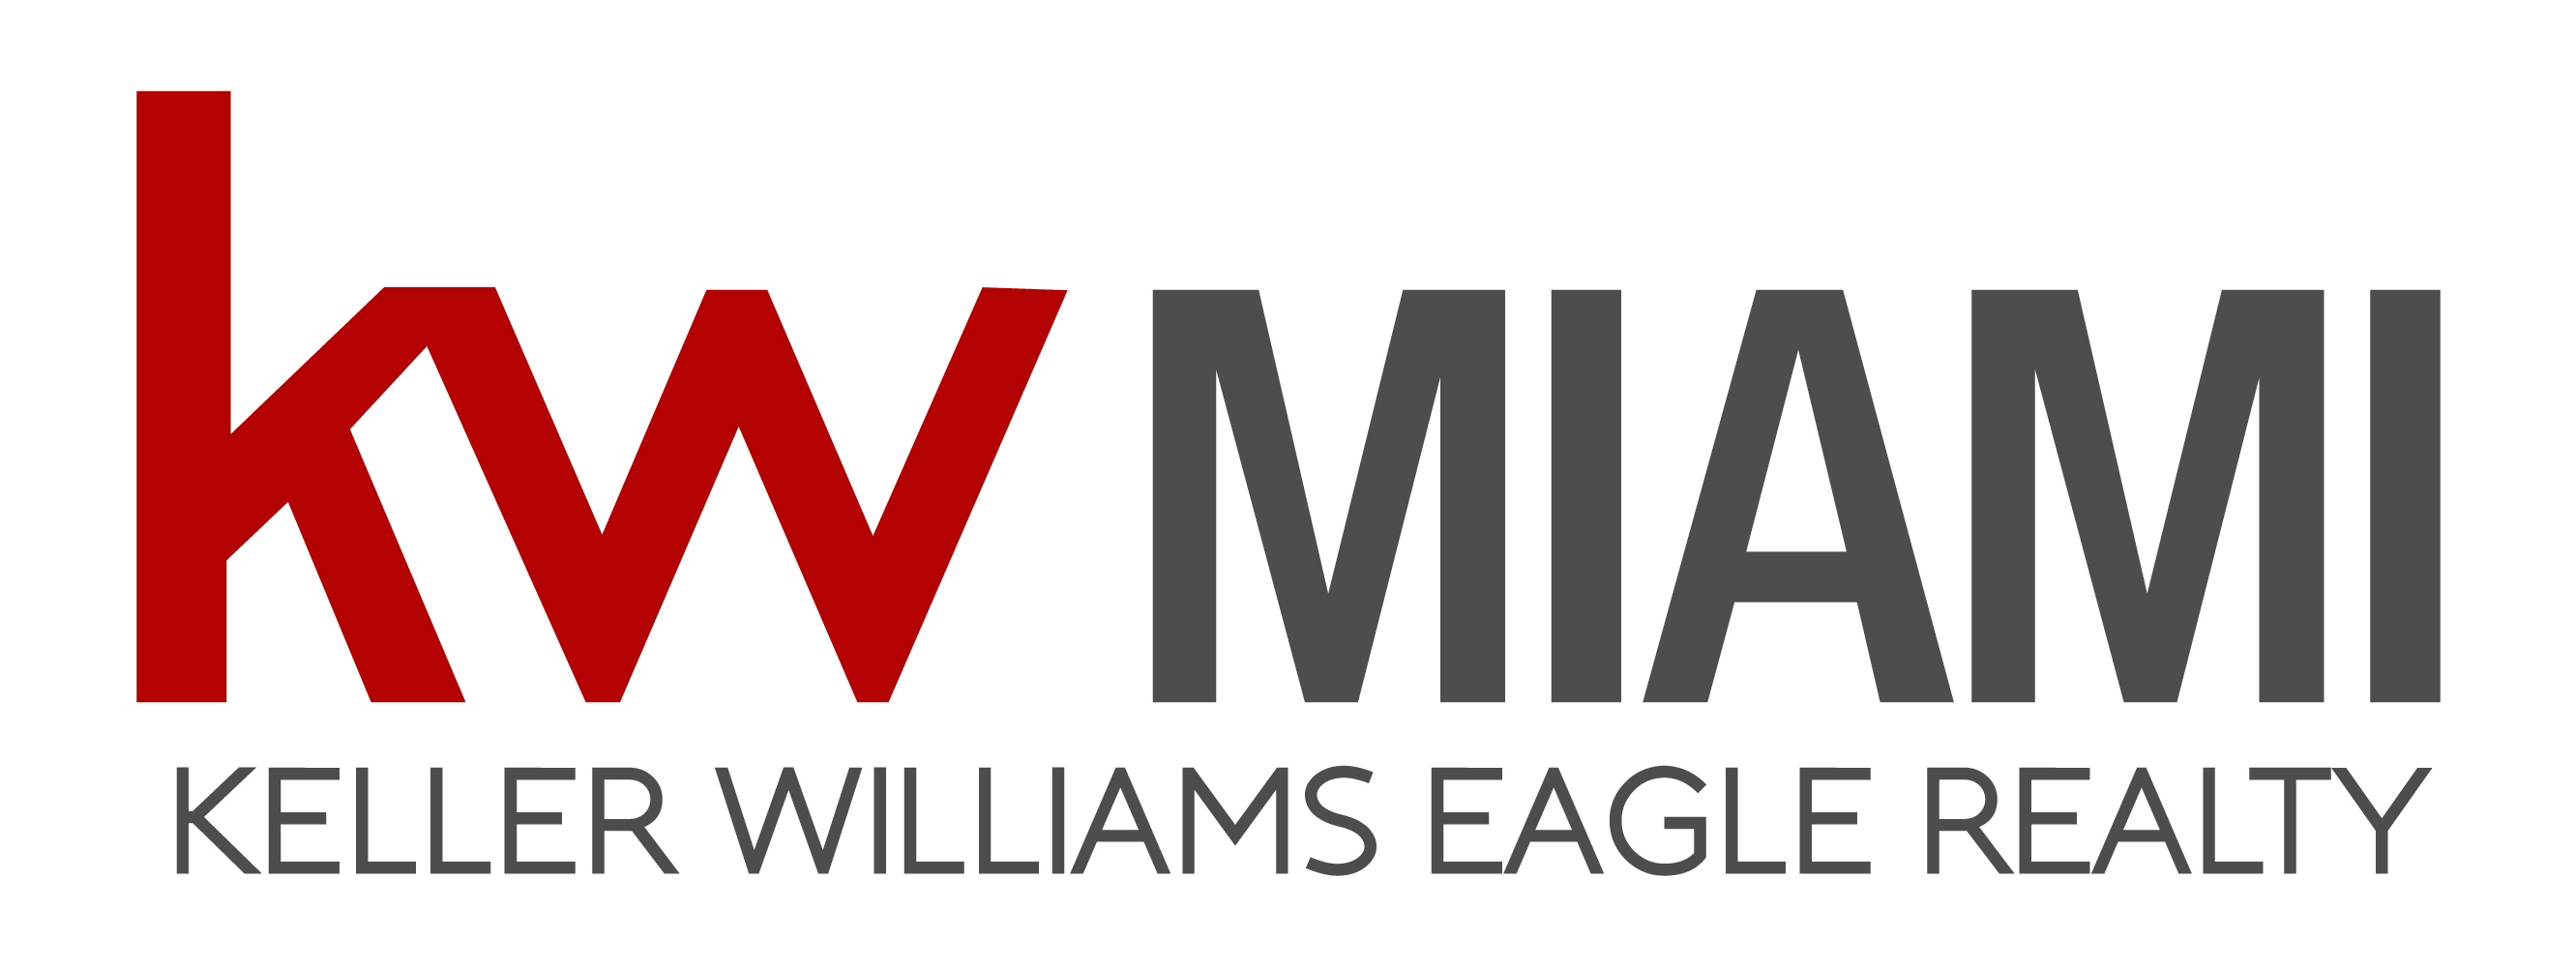 Keller Williams Eagle Realty logo